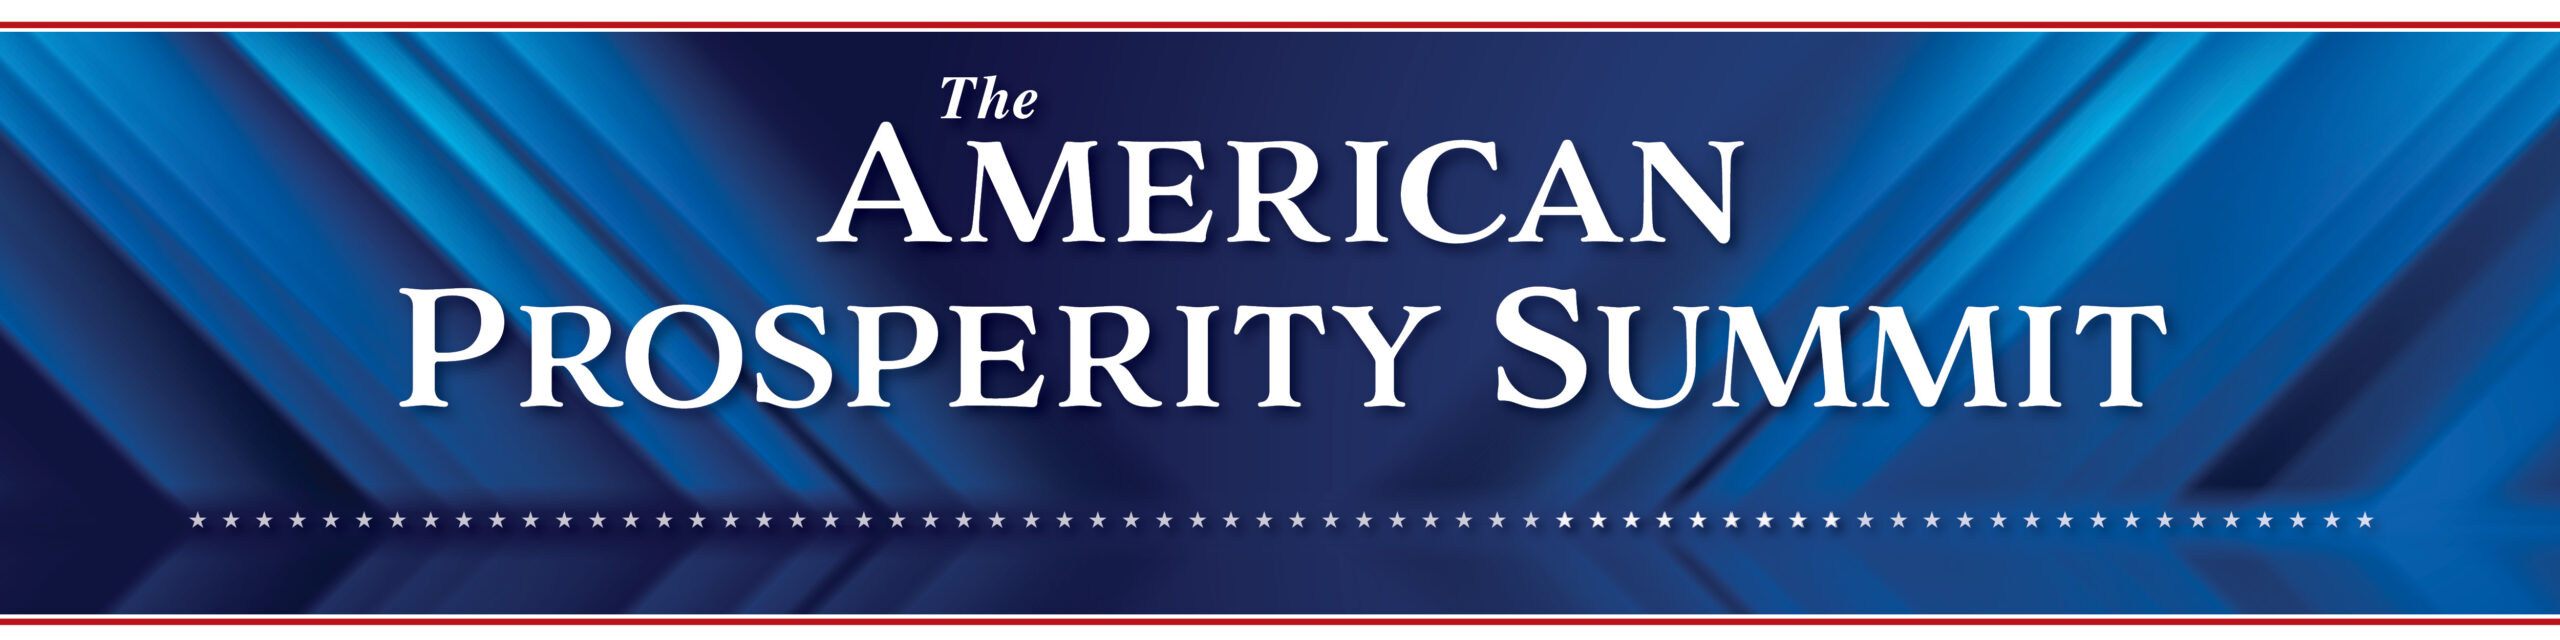 American Prosperity Summit